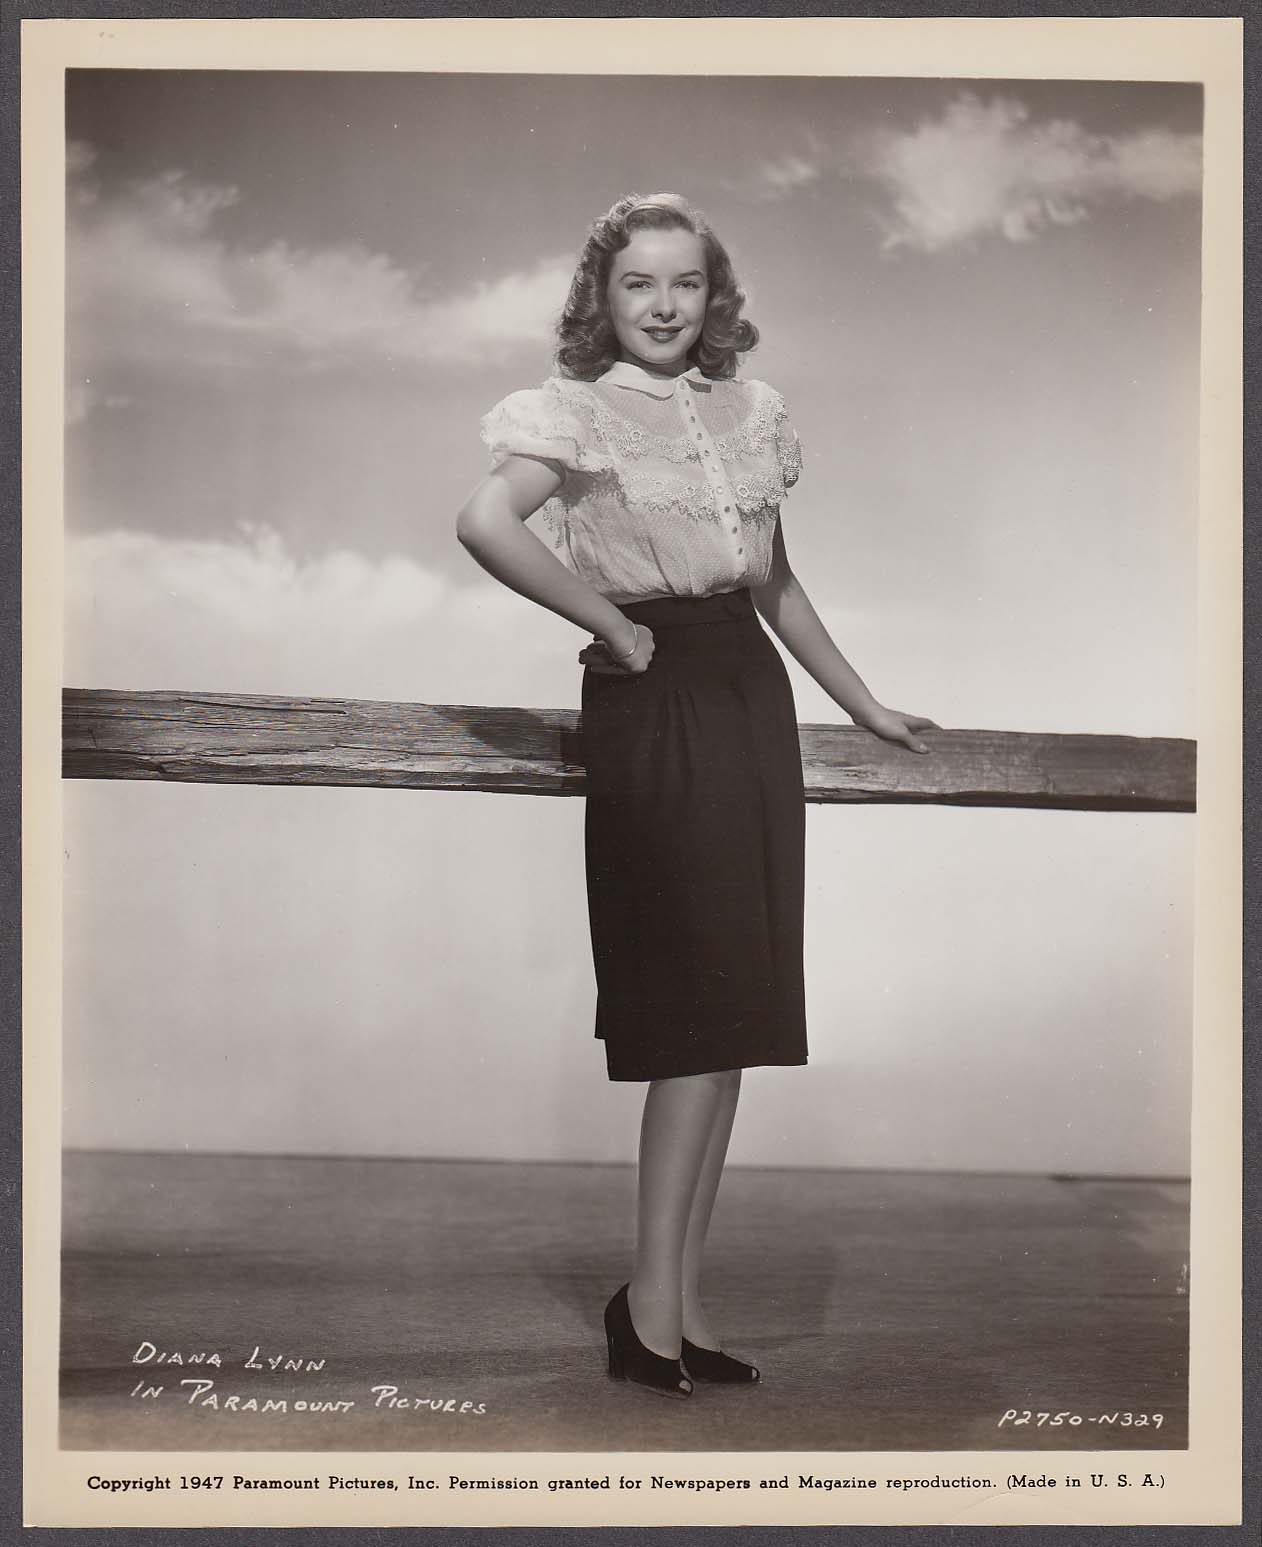 Diana Lynn Paramount Pictures 8x10 photo 1947 #4